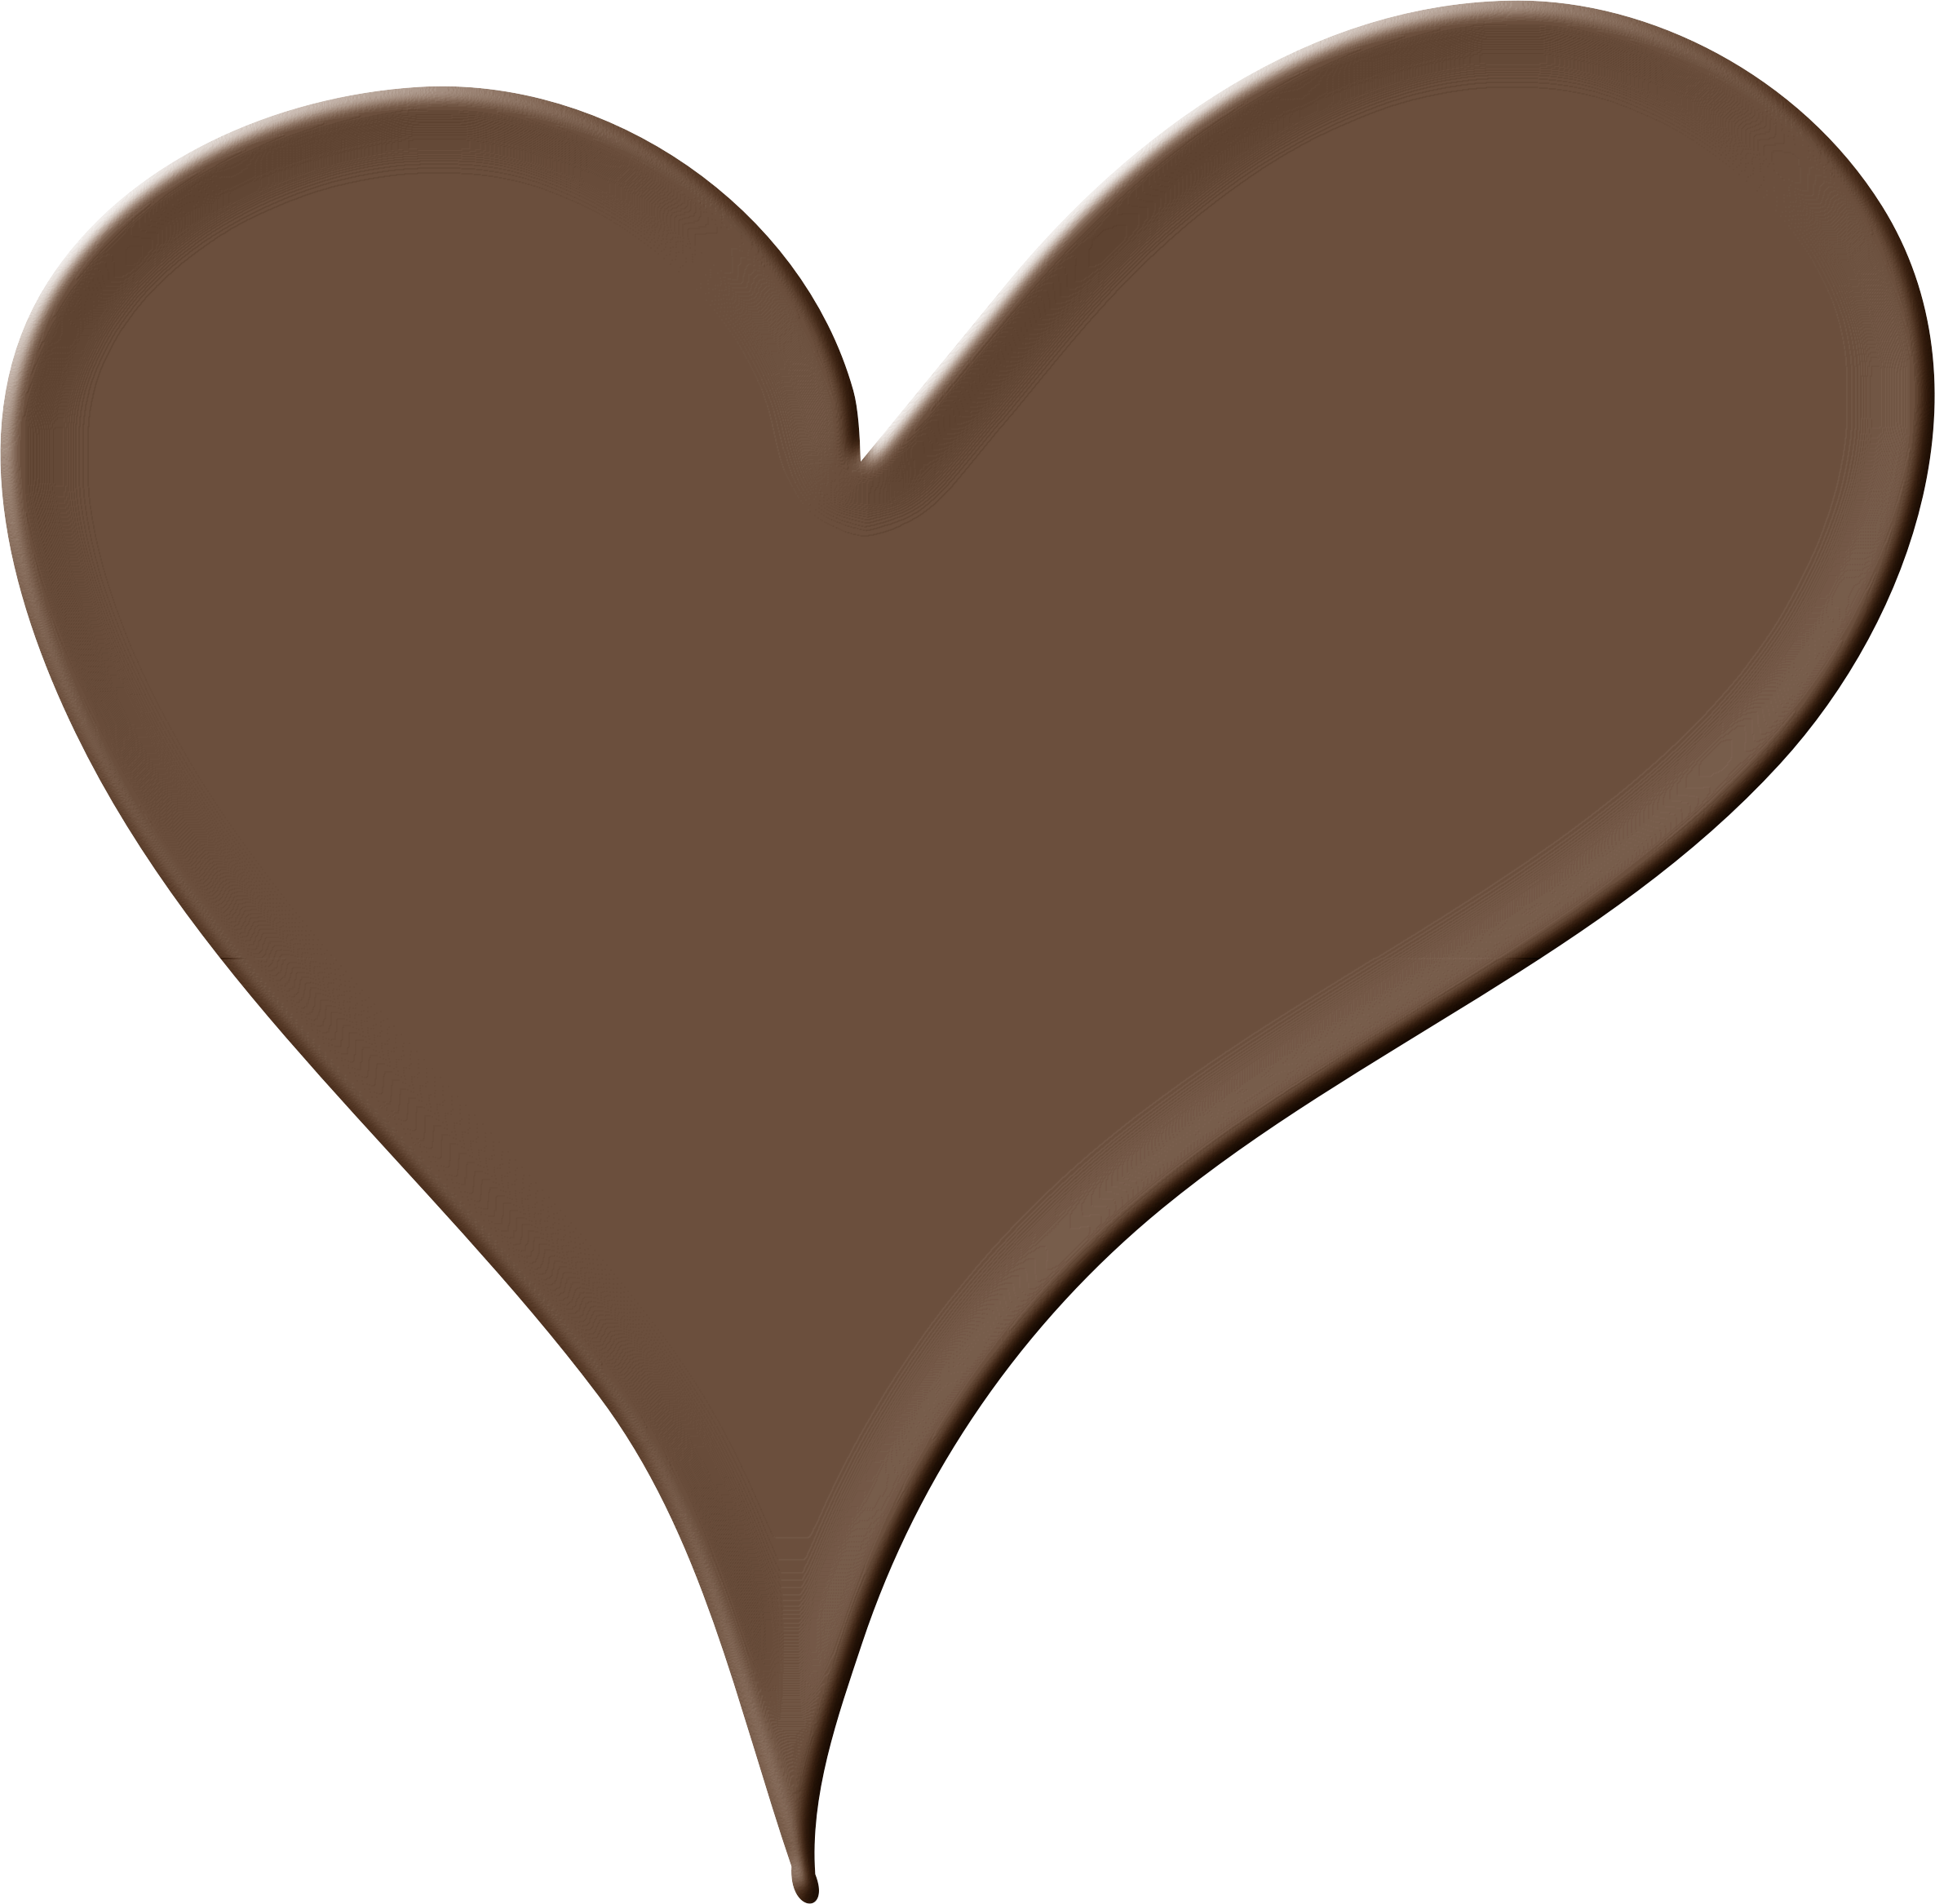 Heart cocoa clipart png library HD Chocoheart Clip Art Chocolate - Chocolate Heart Png ... png library